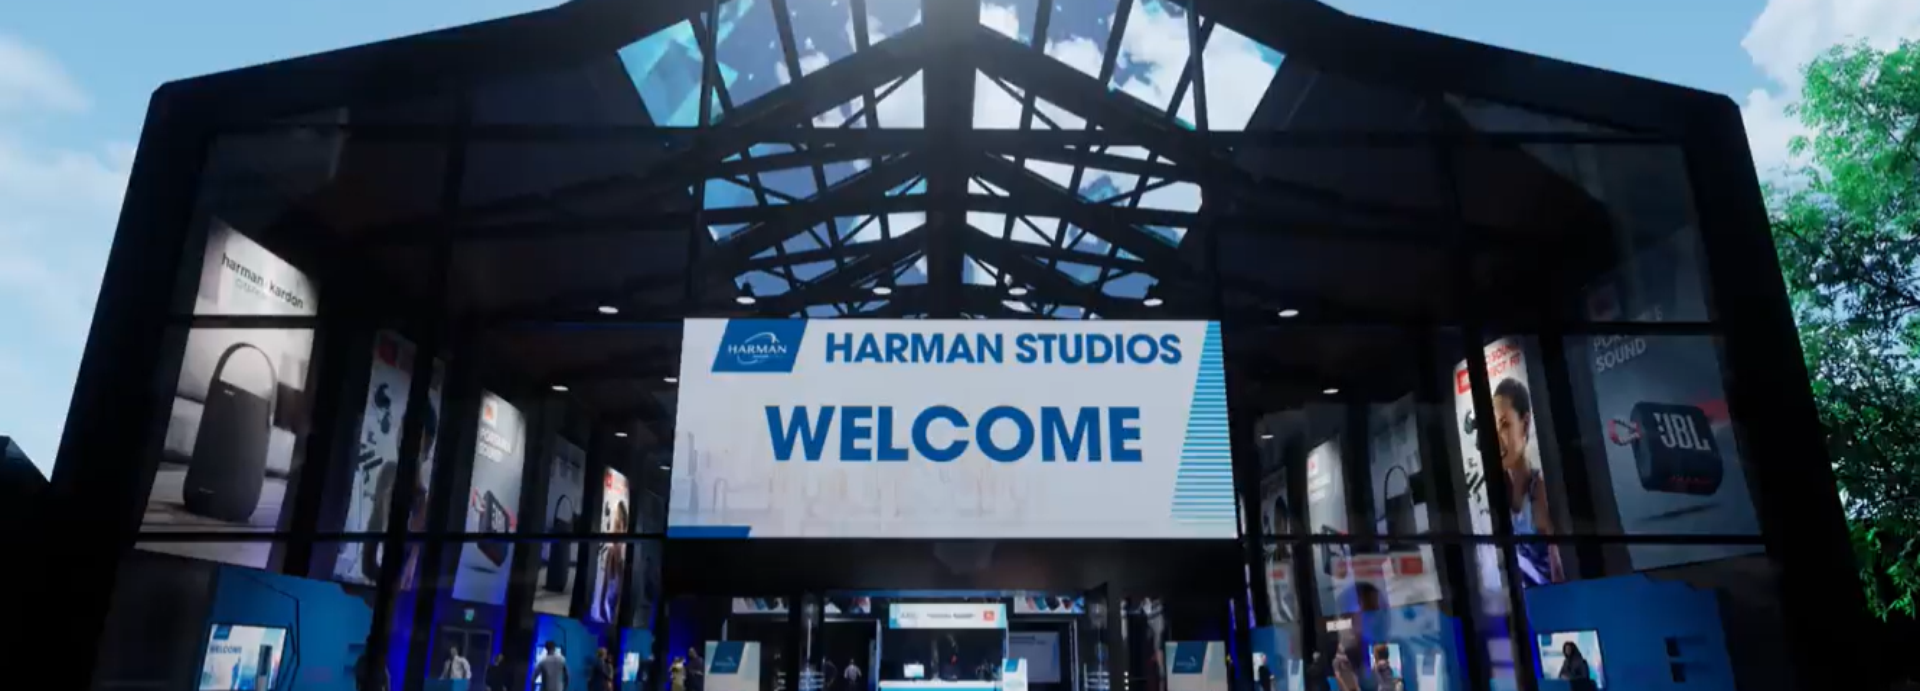 HARMAN Autumn 2020 Launch Event - US